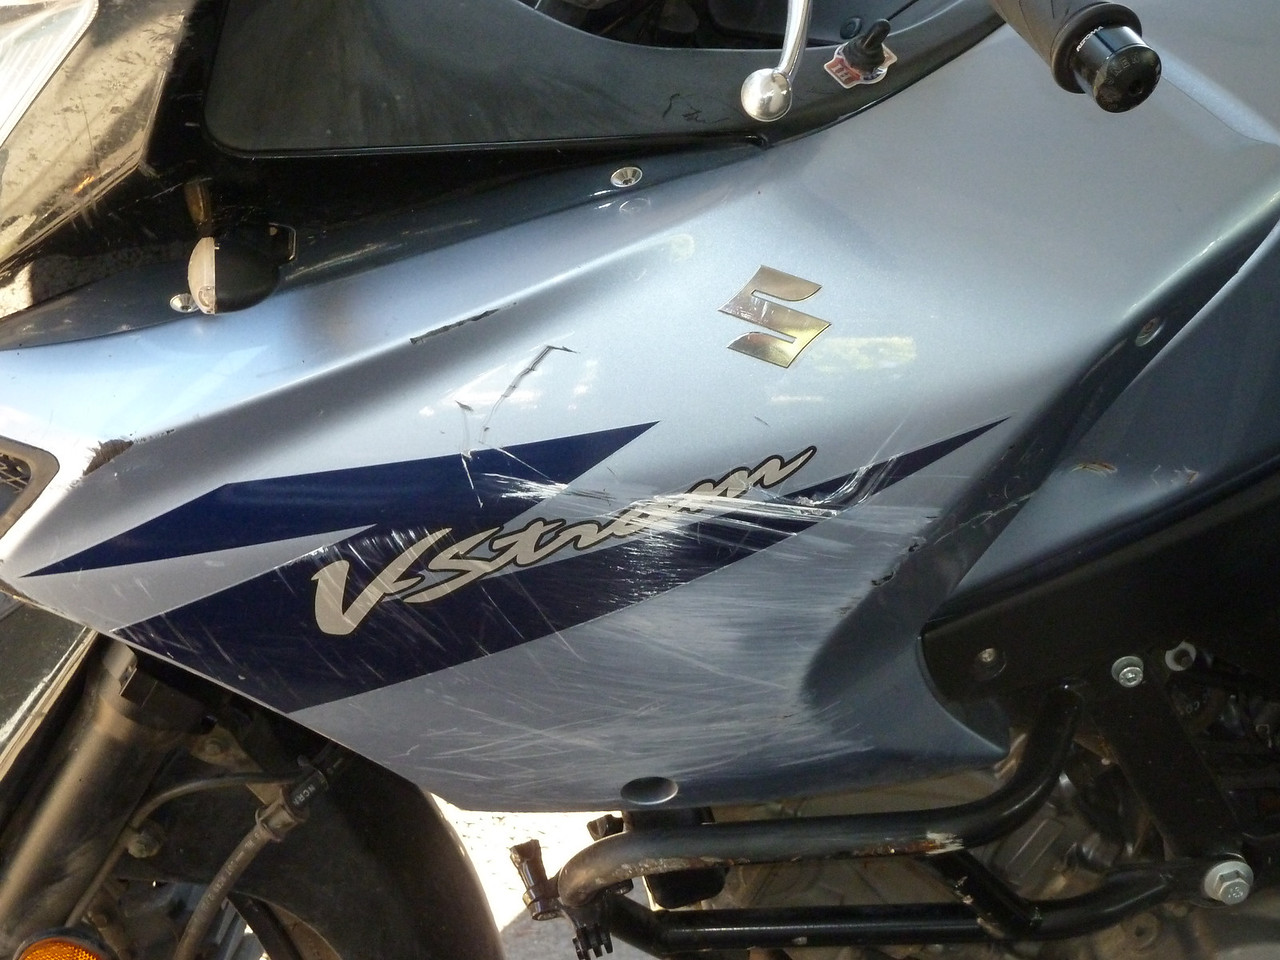 a v-strom with road rash? Shocker.